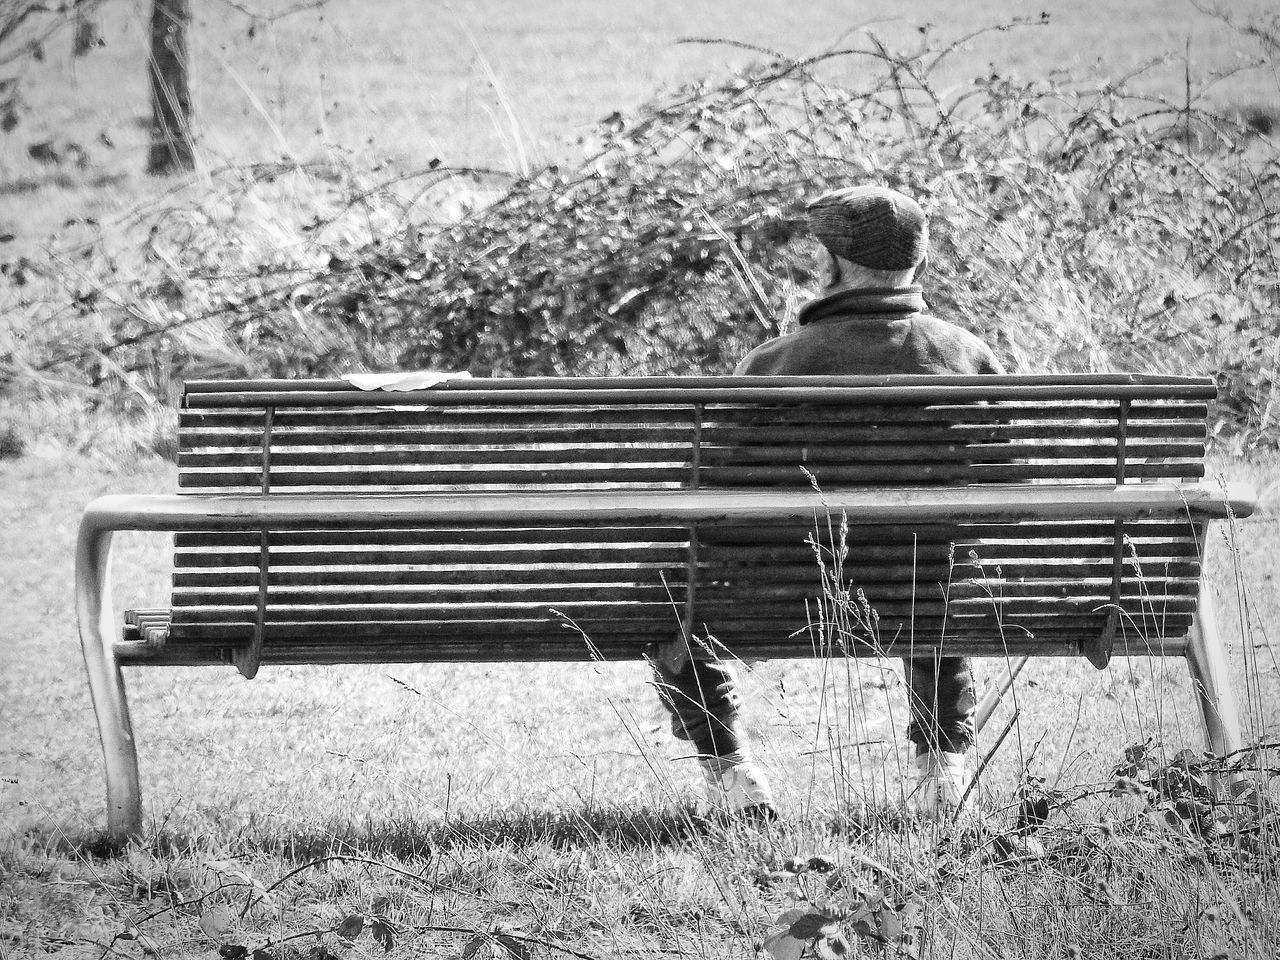 Contemplation Contemplating Bench Park Bench Outdoors Day Sitting One Person Nature Single Monochrome Black And White Park Bench Seat One Person Watching Cap Seated Lines Bushes Slatted Horizontal Lines